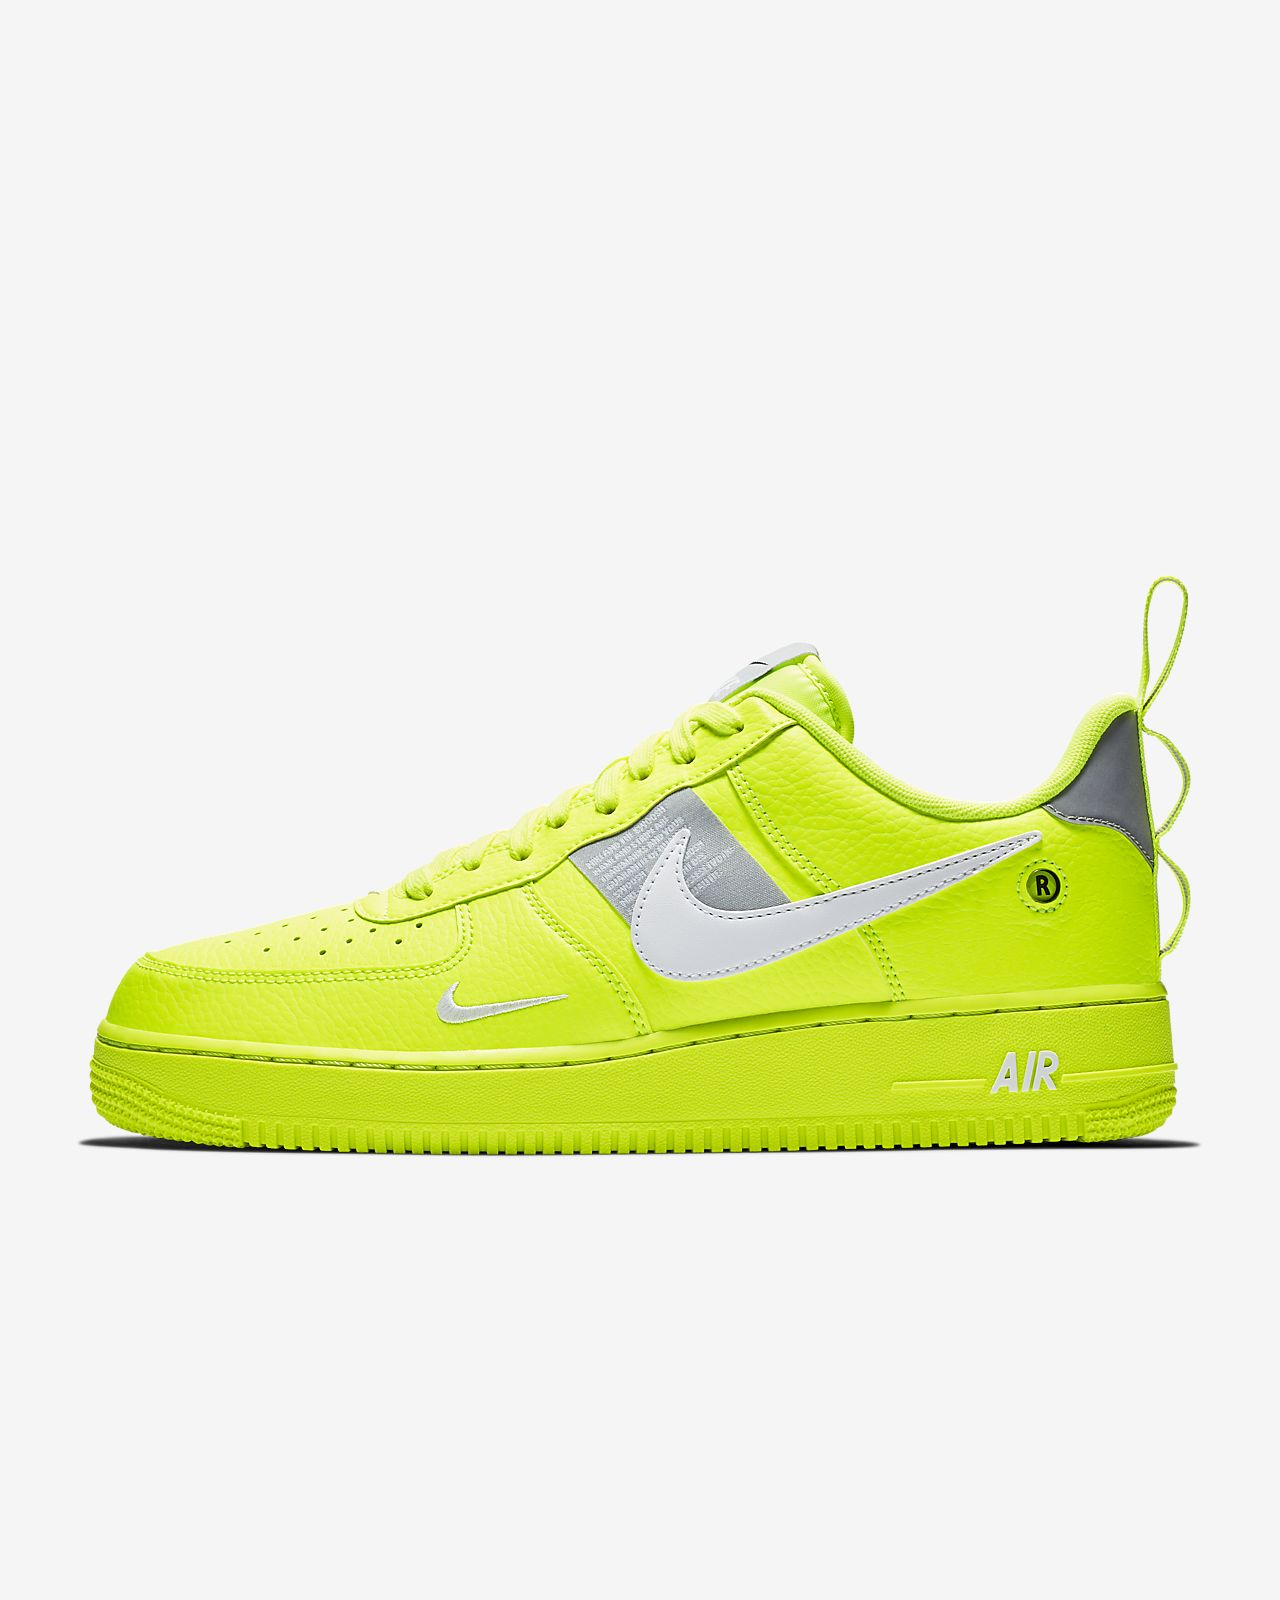 sports shoes e87a6 e6fc5 ... Chaussure Nike Air Force 1 07 LV8 Utility pour Homme